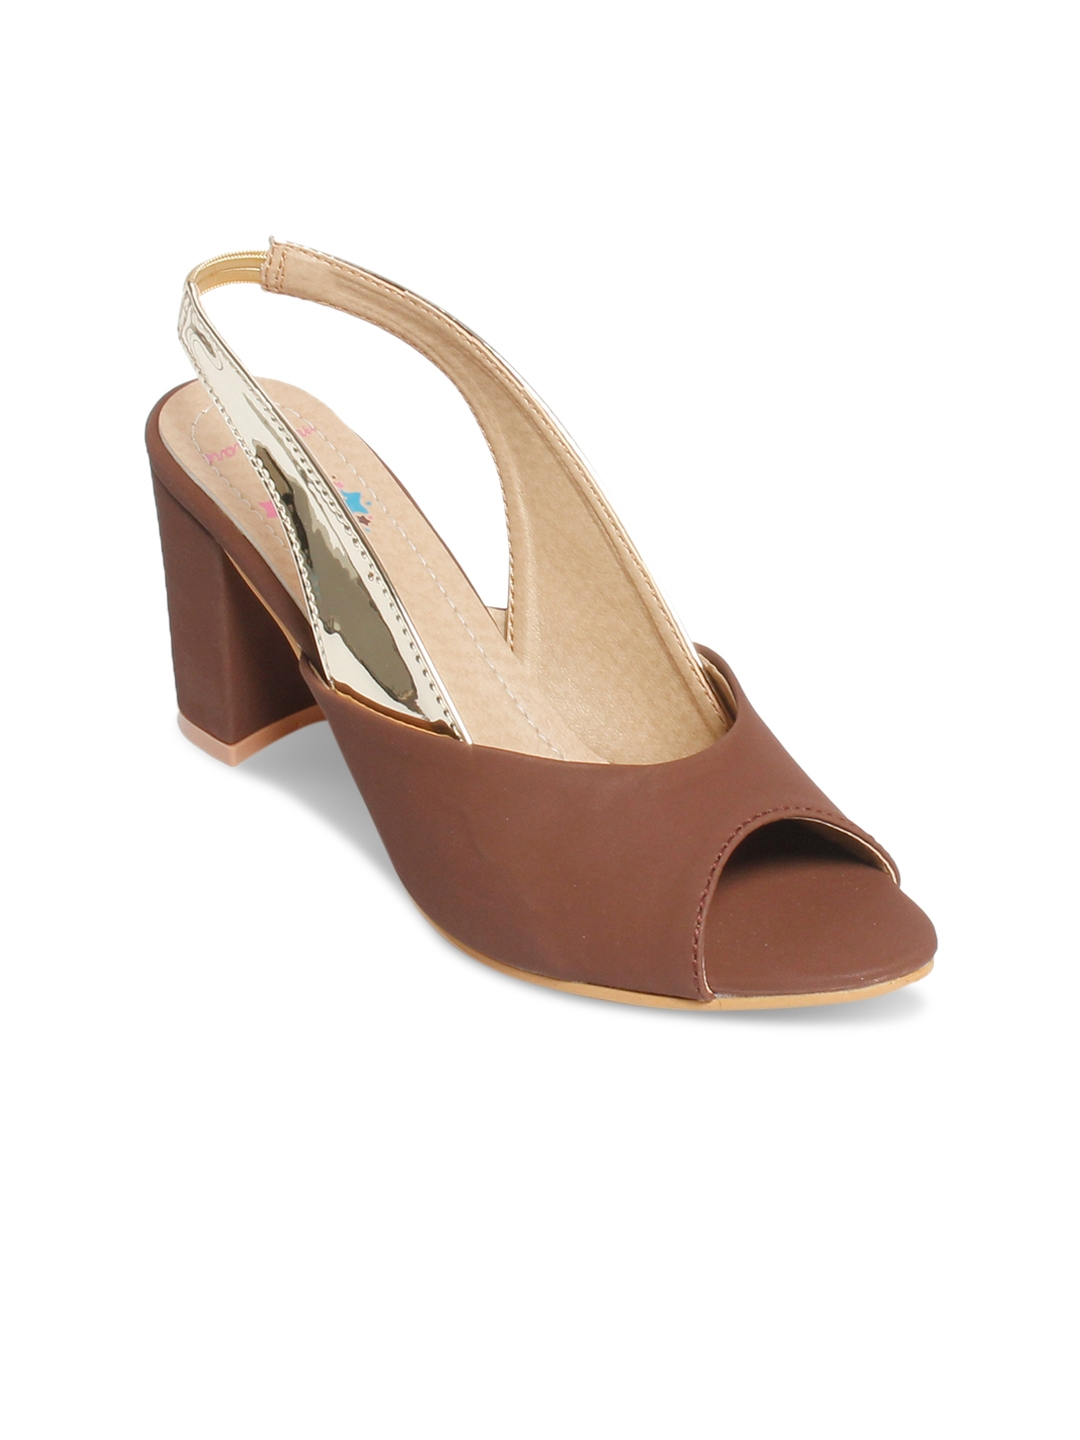 af8e200b0 Buy Meriggiare Women Brown Solid Sandals - Heels for Women 2324248 ...